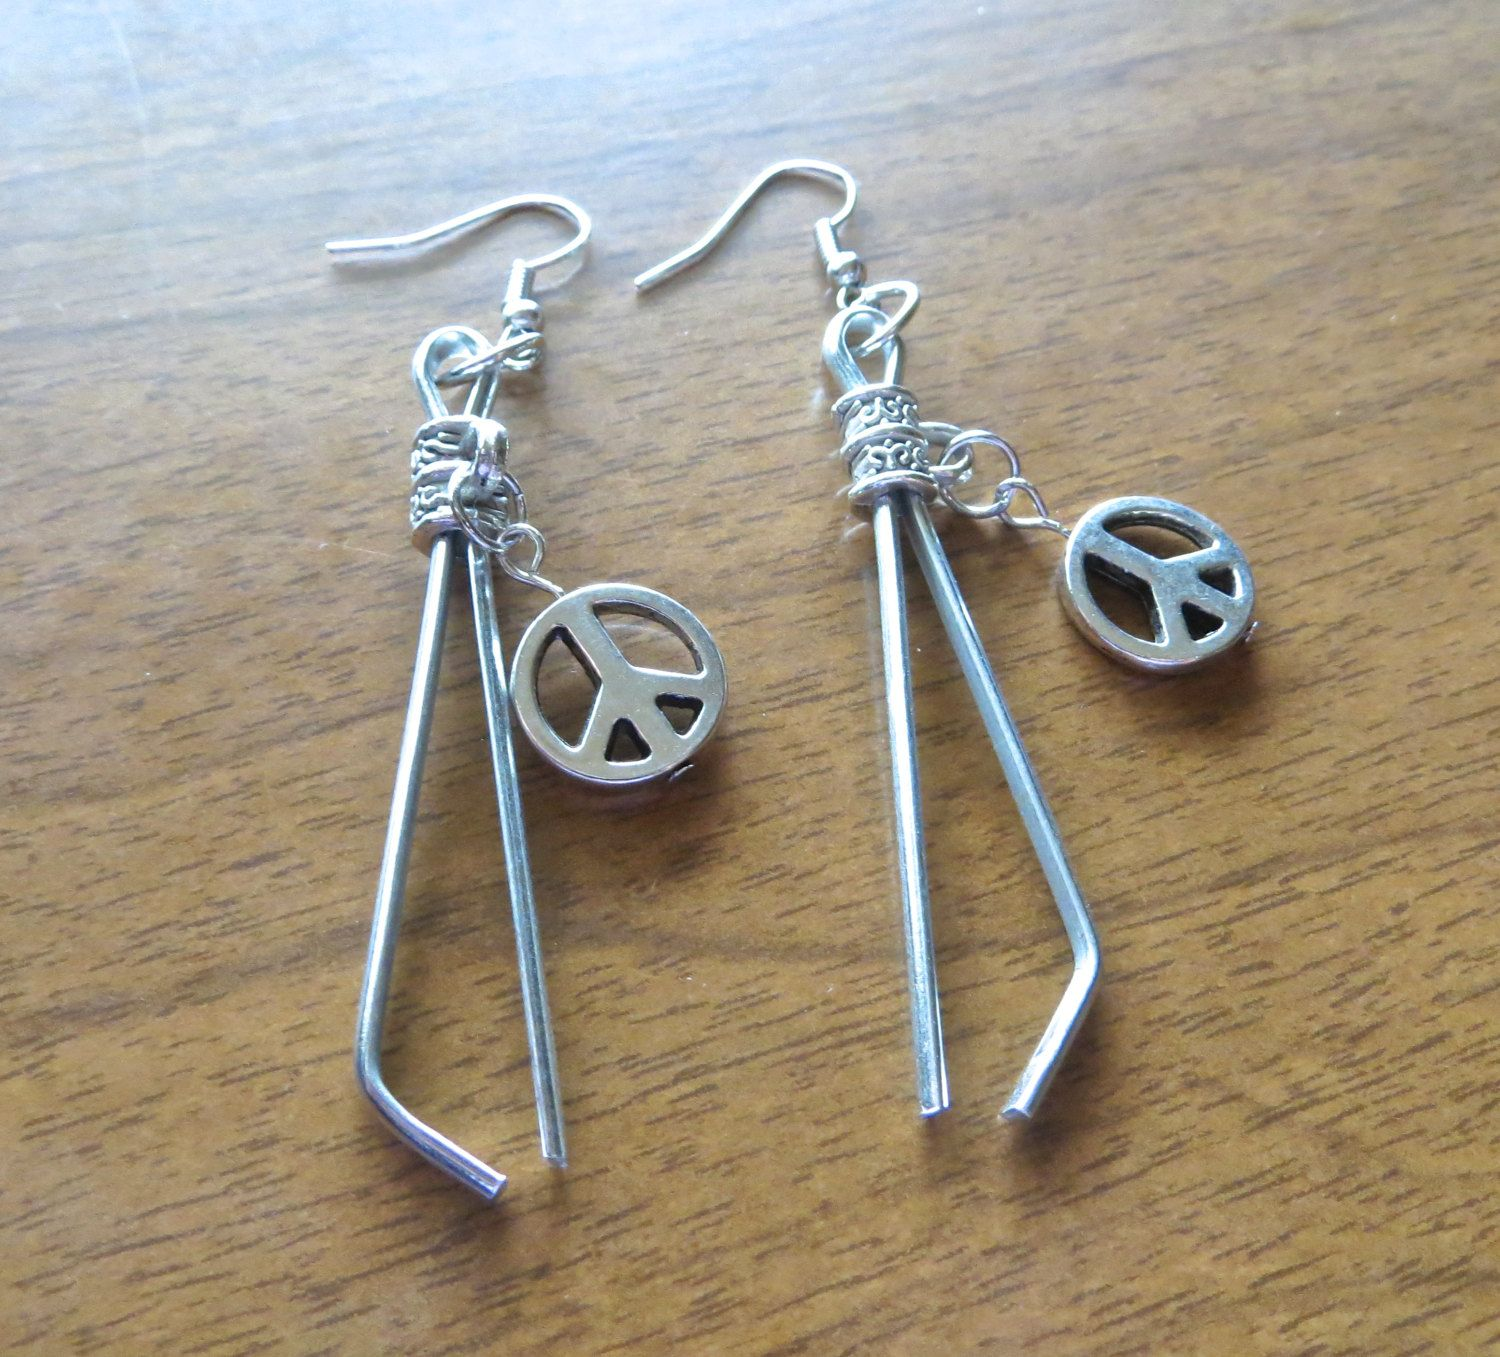 Roach clip earrings